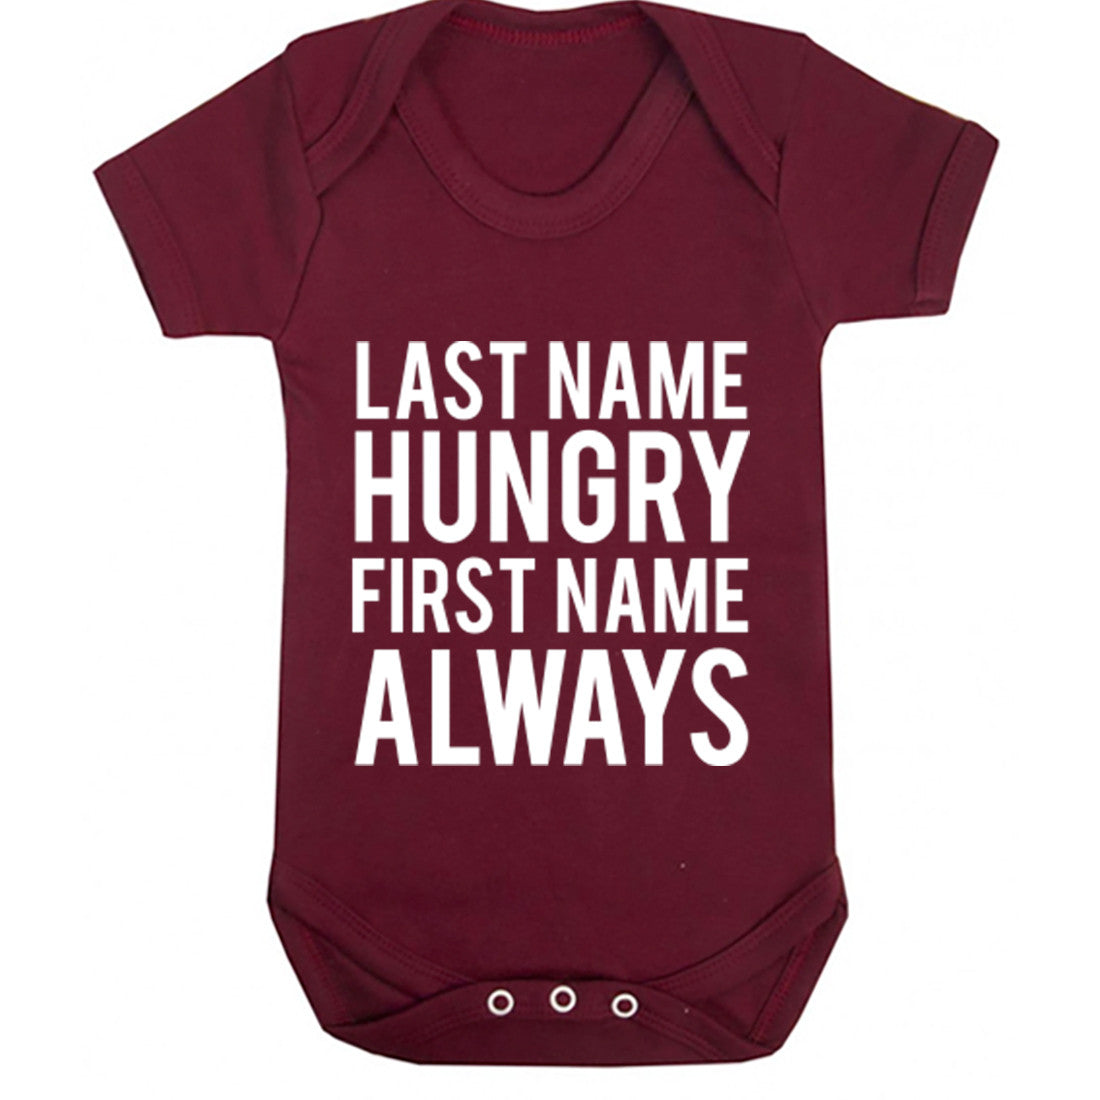 Last Name Hungry First Name Always Baby Vest K0692 - Illustrated Identity Ltd.